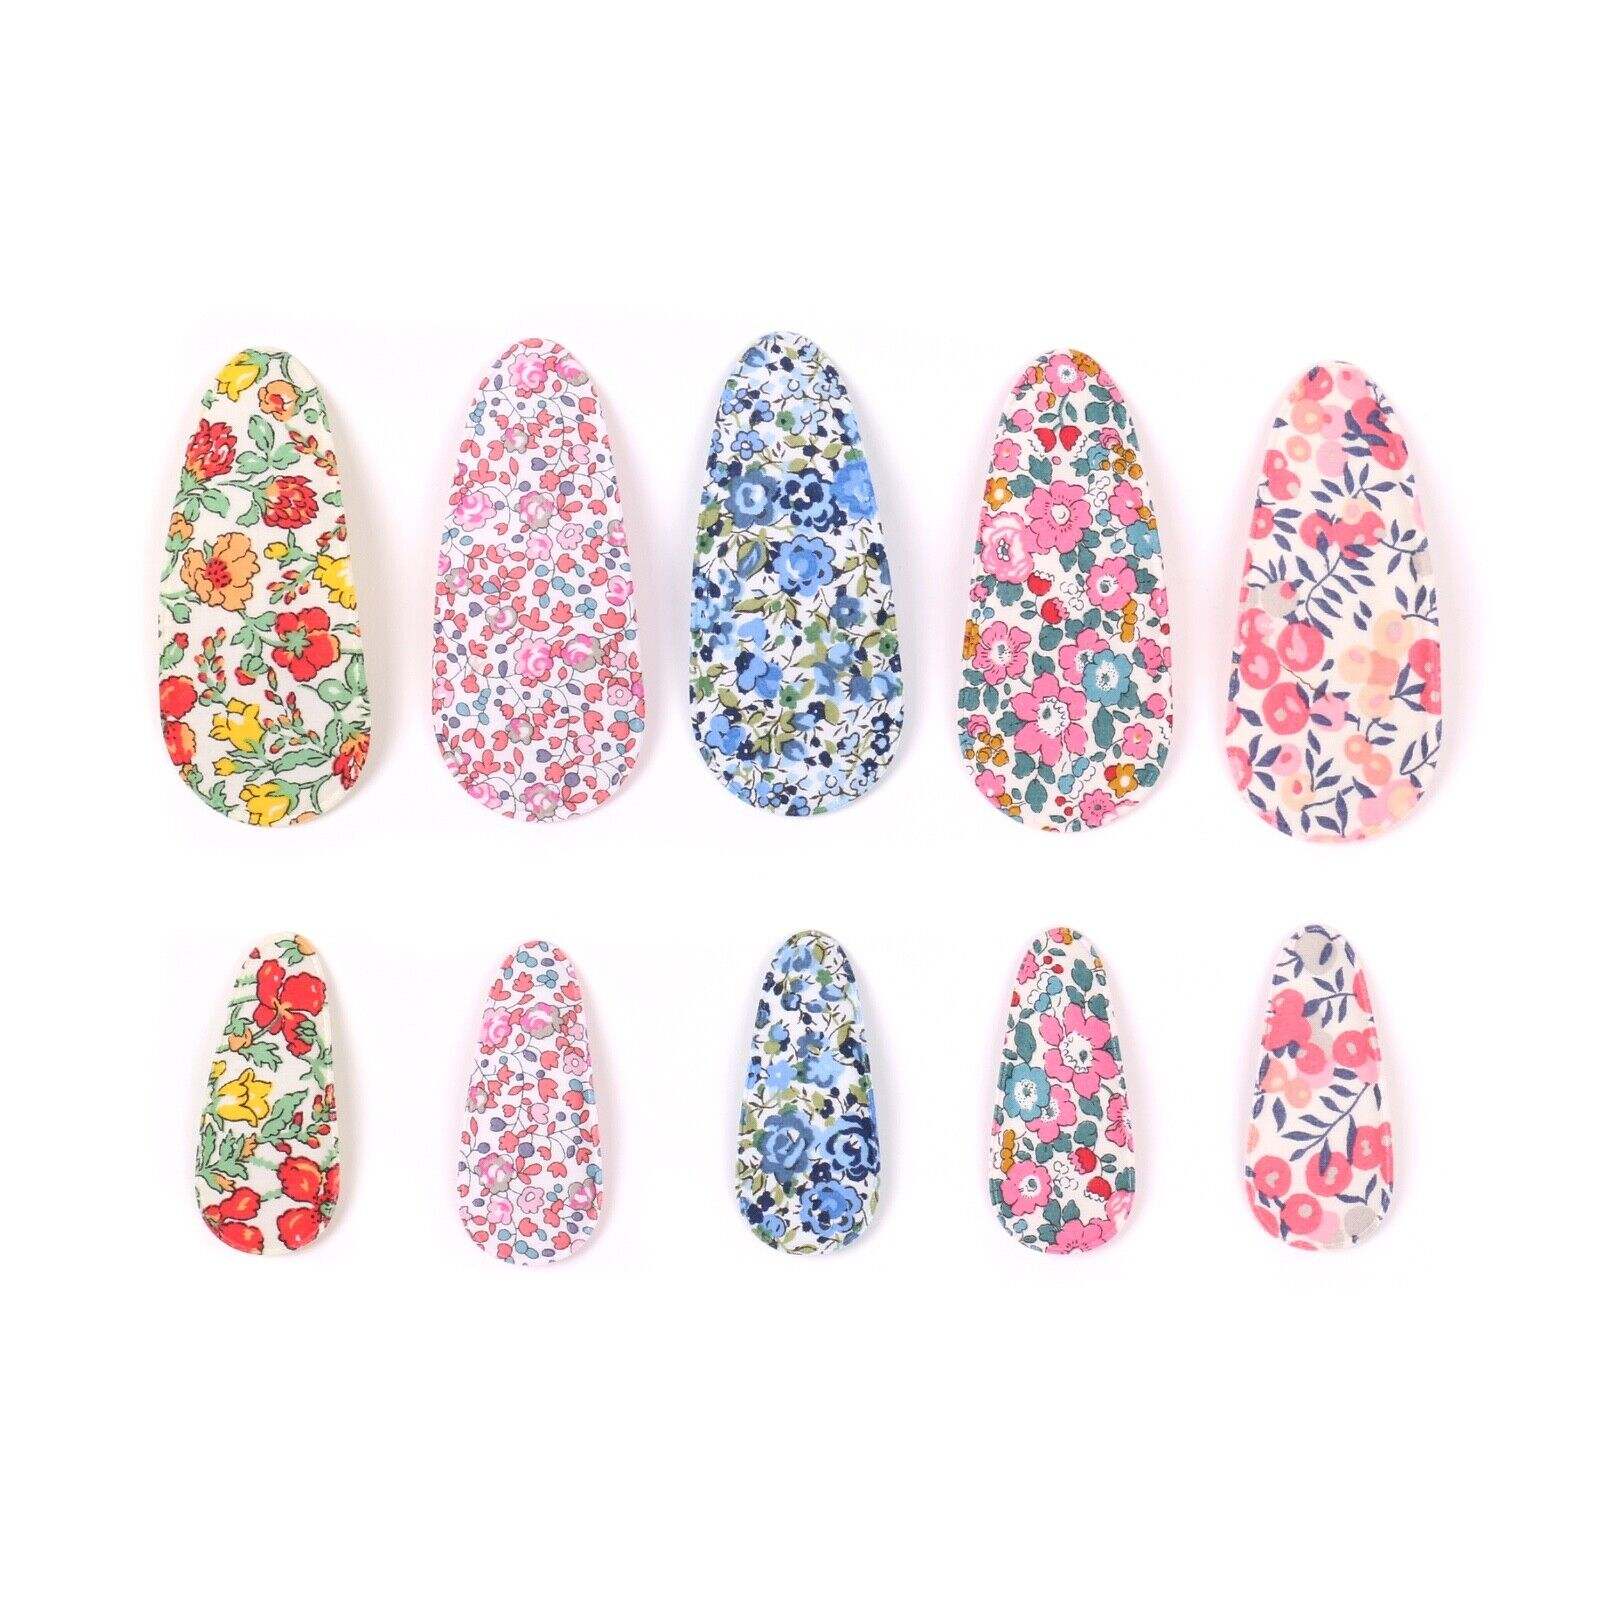 Liberty London Fabric Snap Clips Big or Small Clips Hair Cli